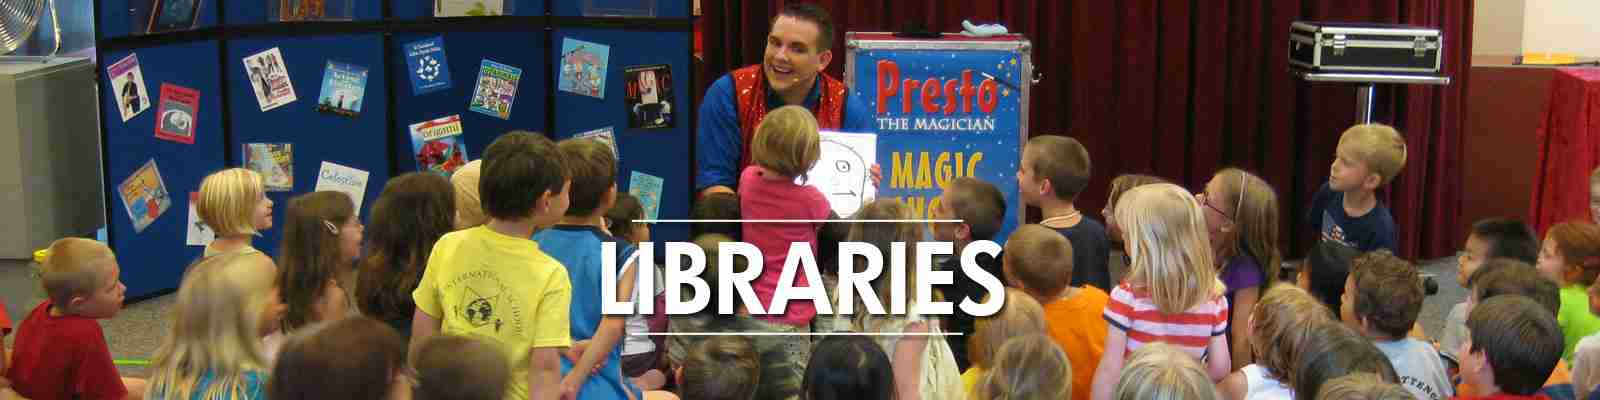 library summer reading program magic shows